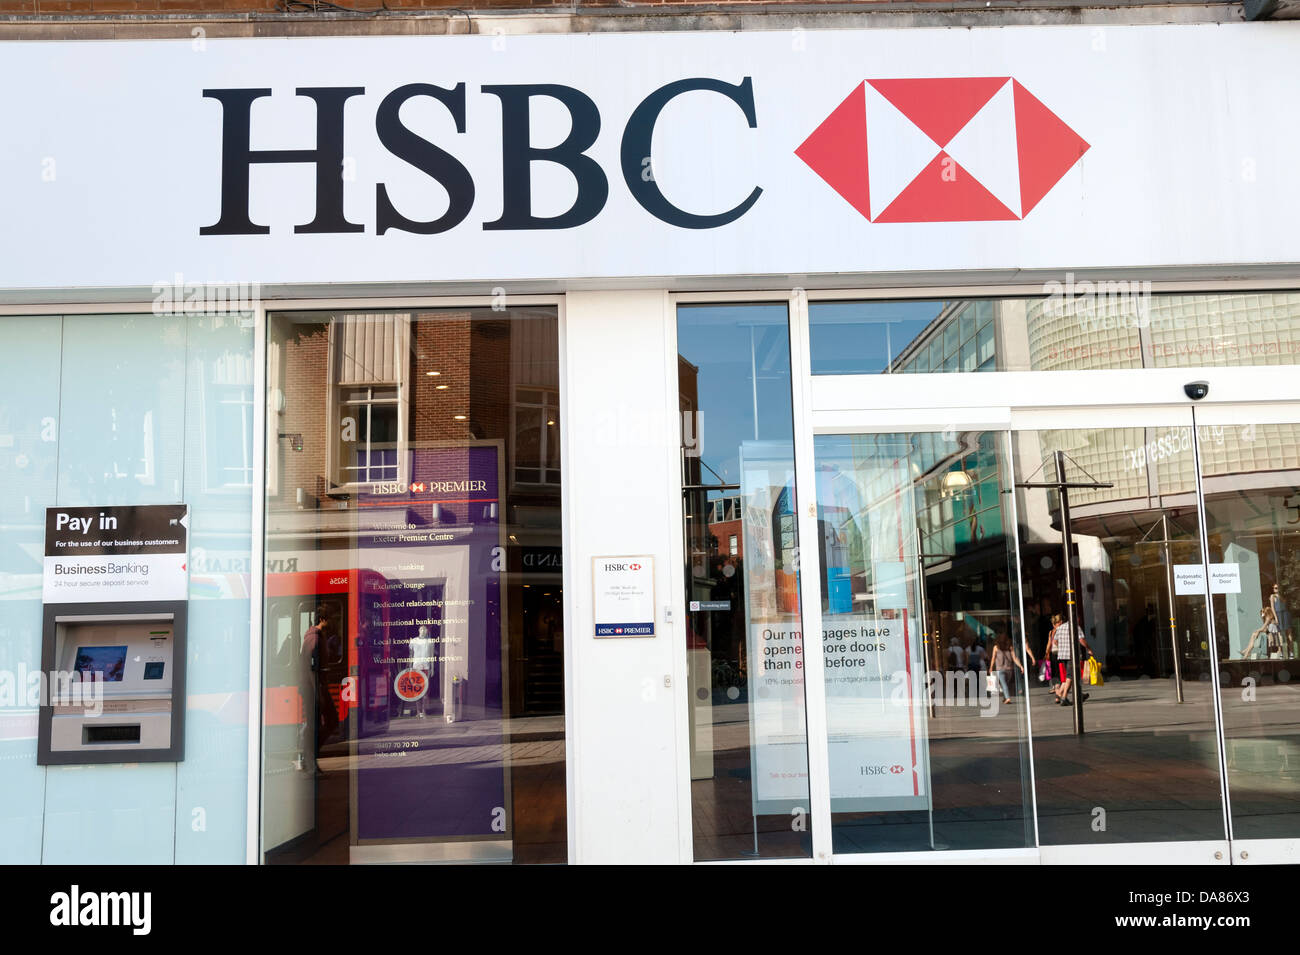 HSBC bank, Exeter, Devon, UK Stock Photo: 57958715 - Alamy